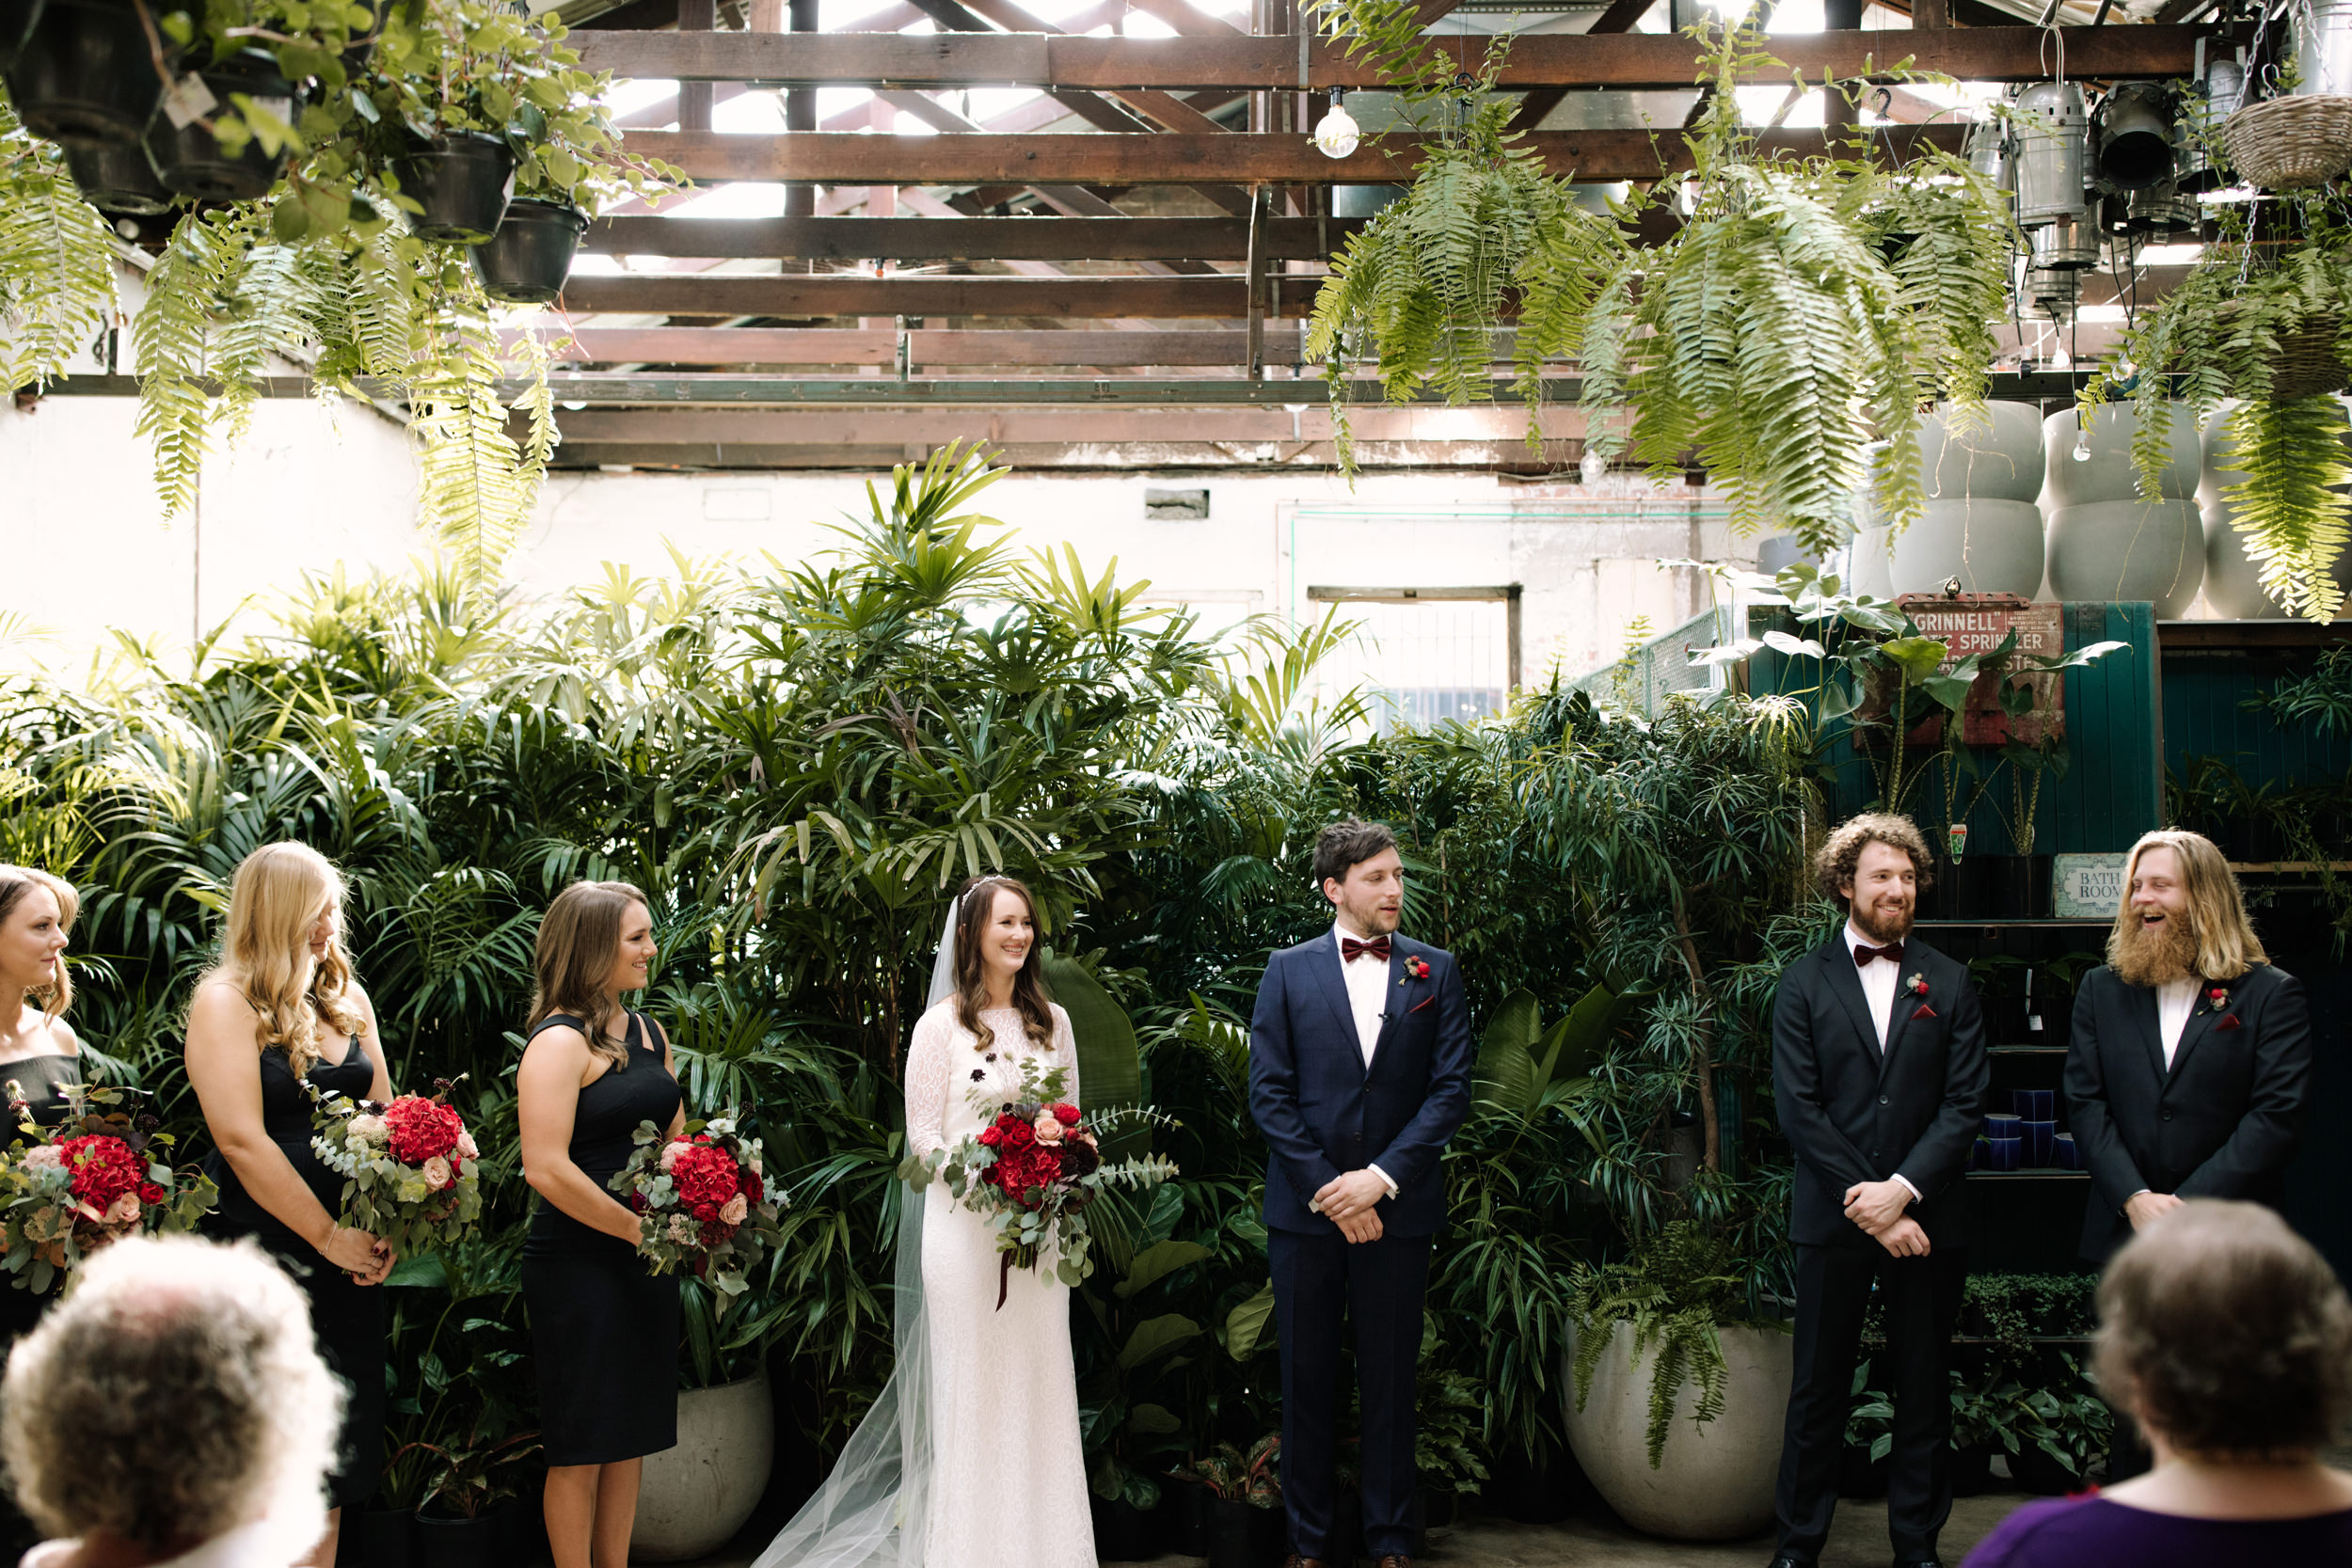 I_Got_You_Babe_Weddings_Emily_Matt_Rupert_Glasshaus_Melbourne0067.JPG